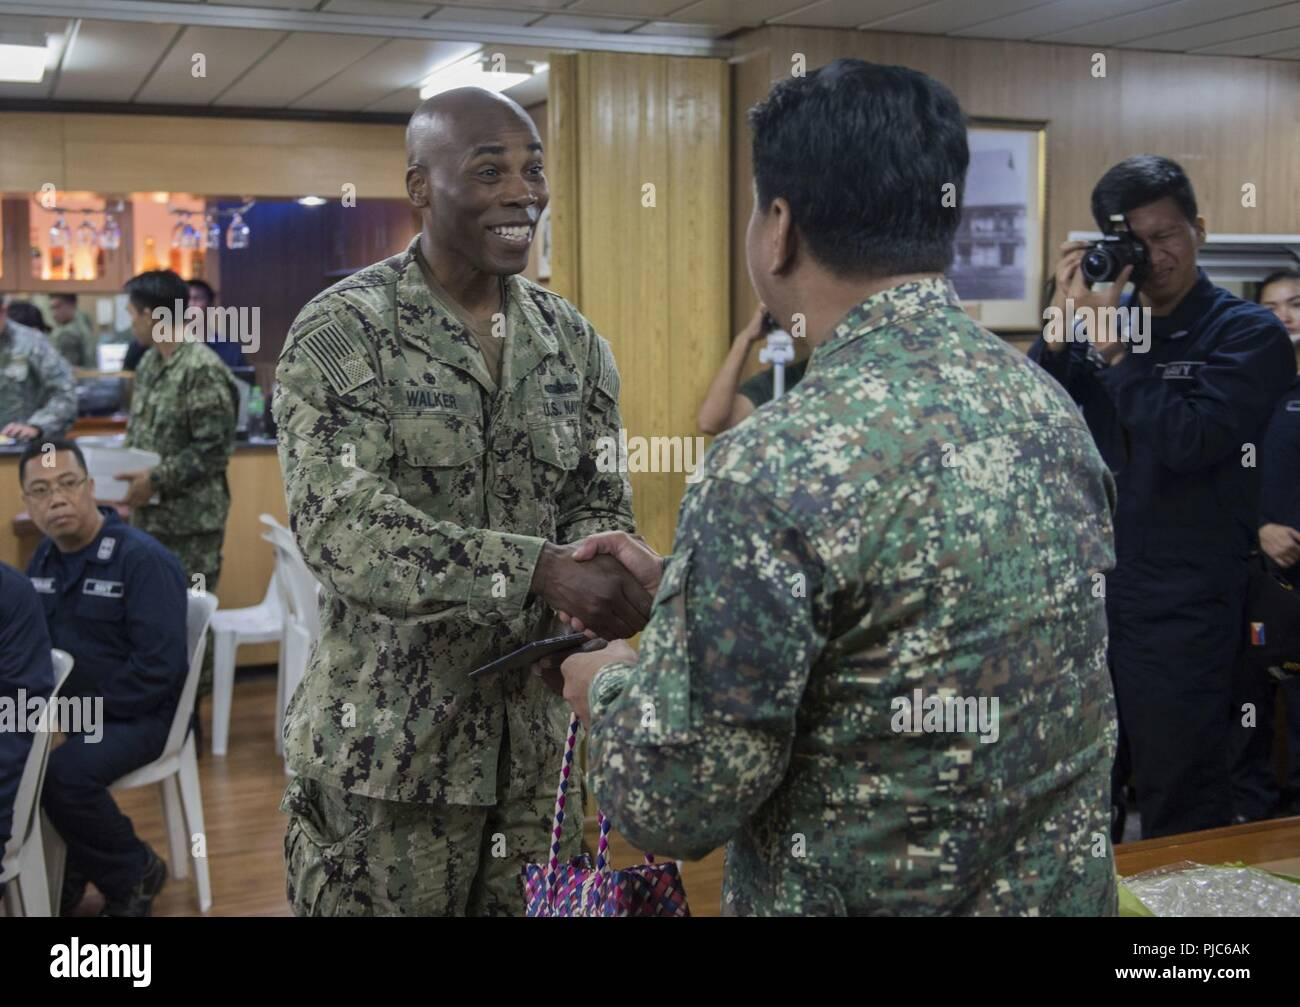 SAN FERNANDO CITY, Philippines (July 14, 2018) Capt. Lex Walker, Commodore, Destroyer Squadron 7, exchanges gifts with Philippine Navy Commodore Nichols Driz, Commander, Naval Forces Northern Luzon, at the closing ceremony of Maritime Training Activity (MTA) Sama Sama 2018 aboard Philippine Navy ship BRP Tarlac (LD-601). The week-long engagement focuses on the full spectrum of naval capabilities and is designed to strengthen the close partnership between both navies while cooperatively ensuring maritime security, stability and prosperity. Stock Photo